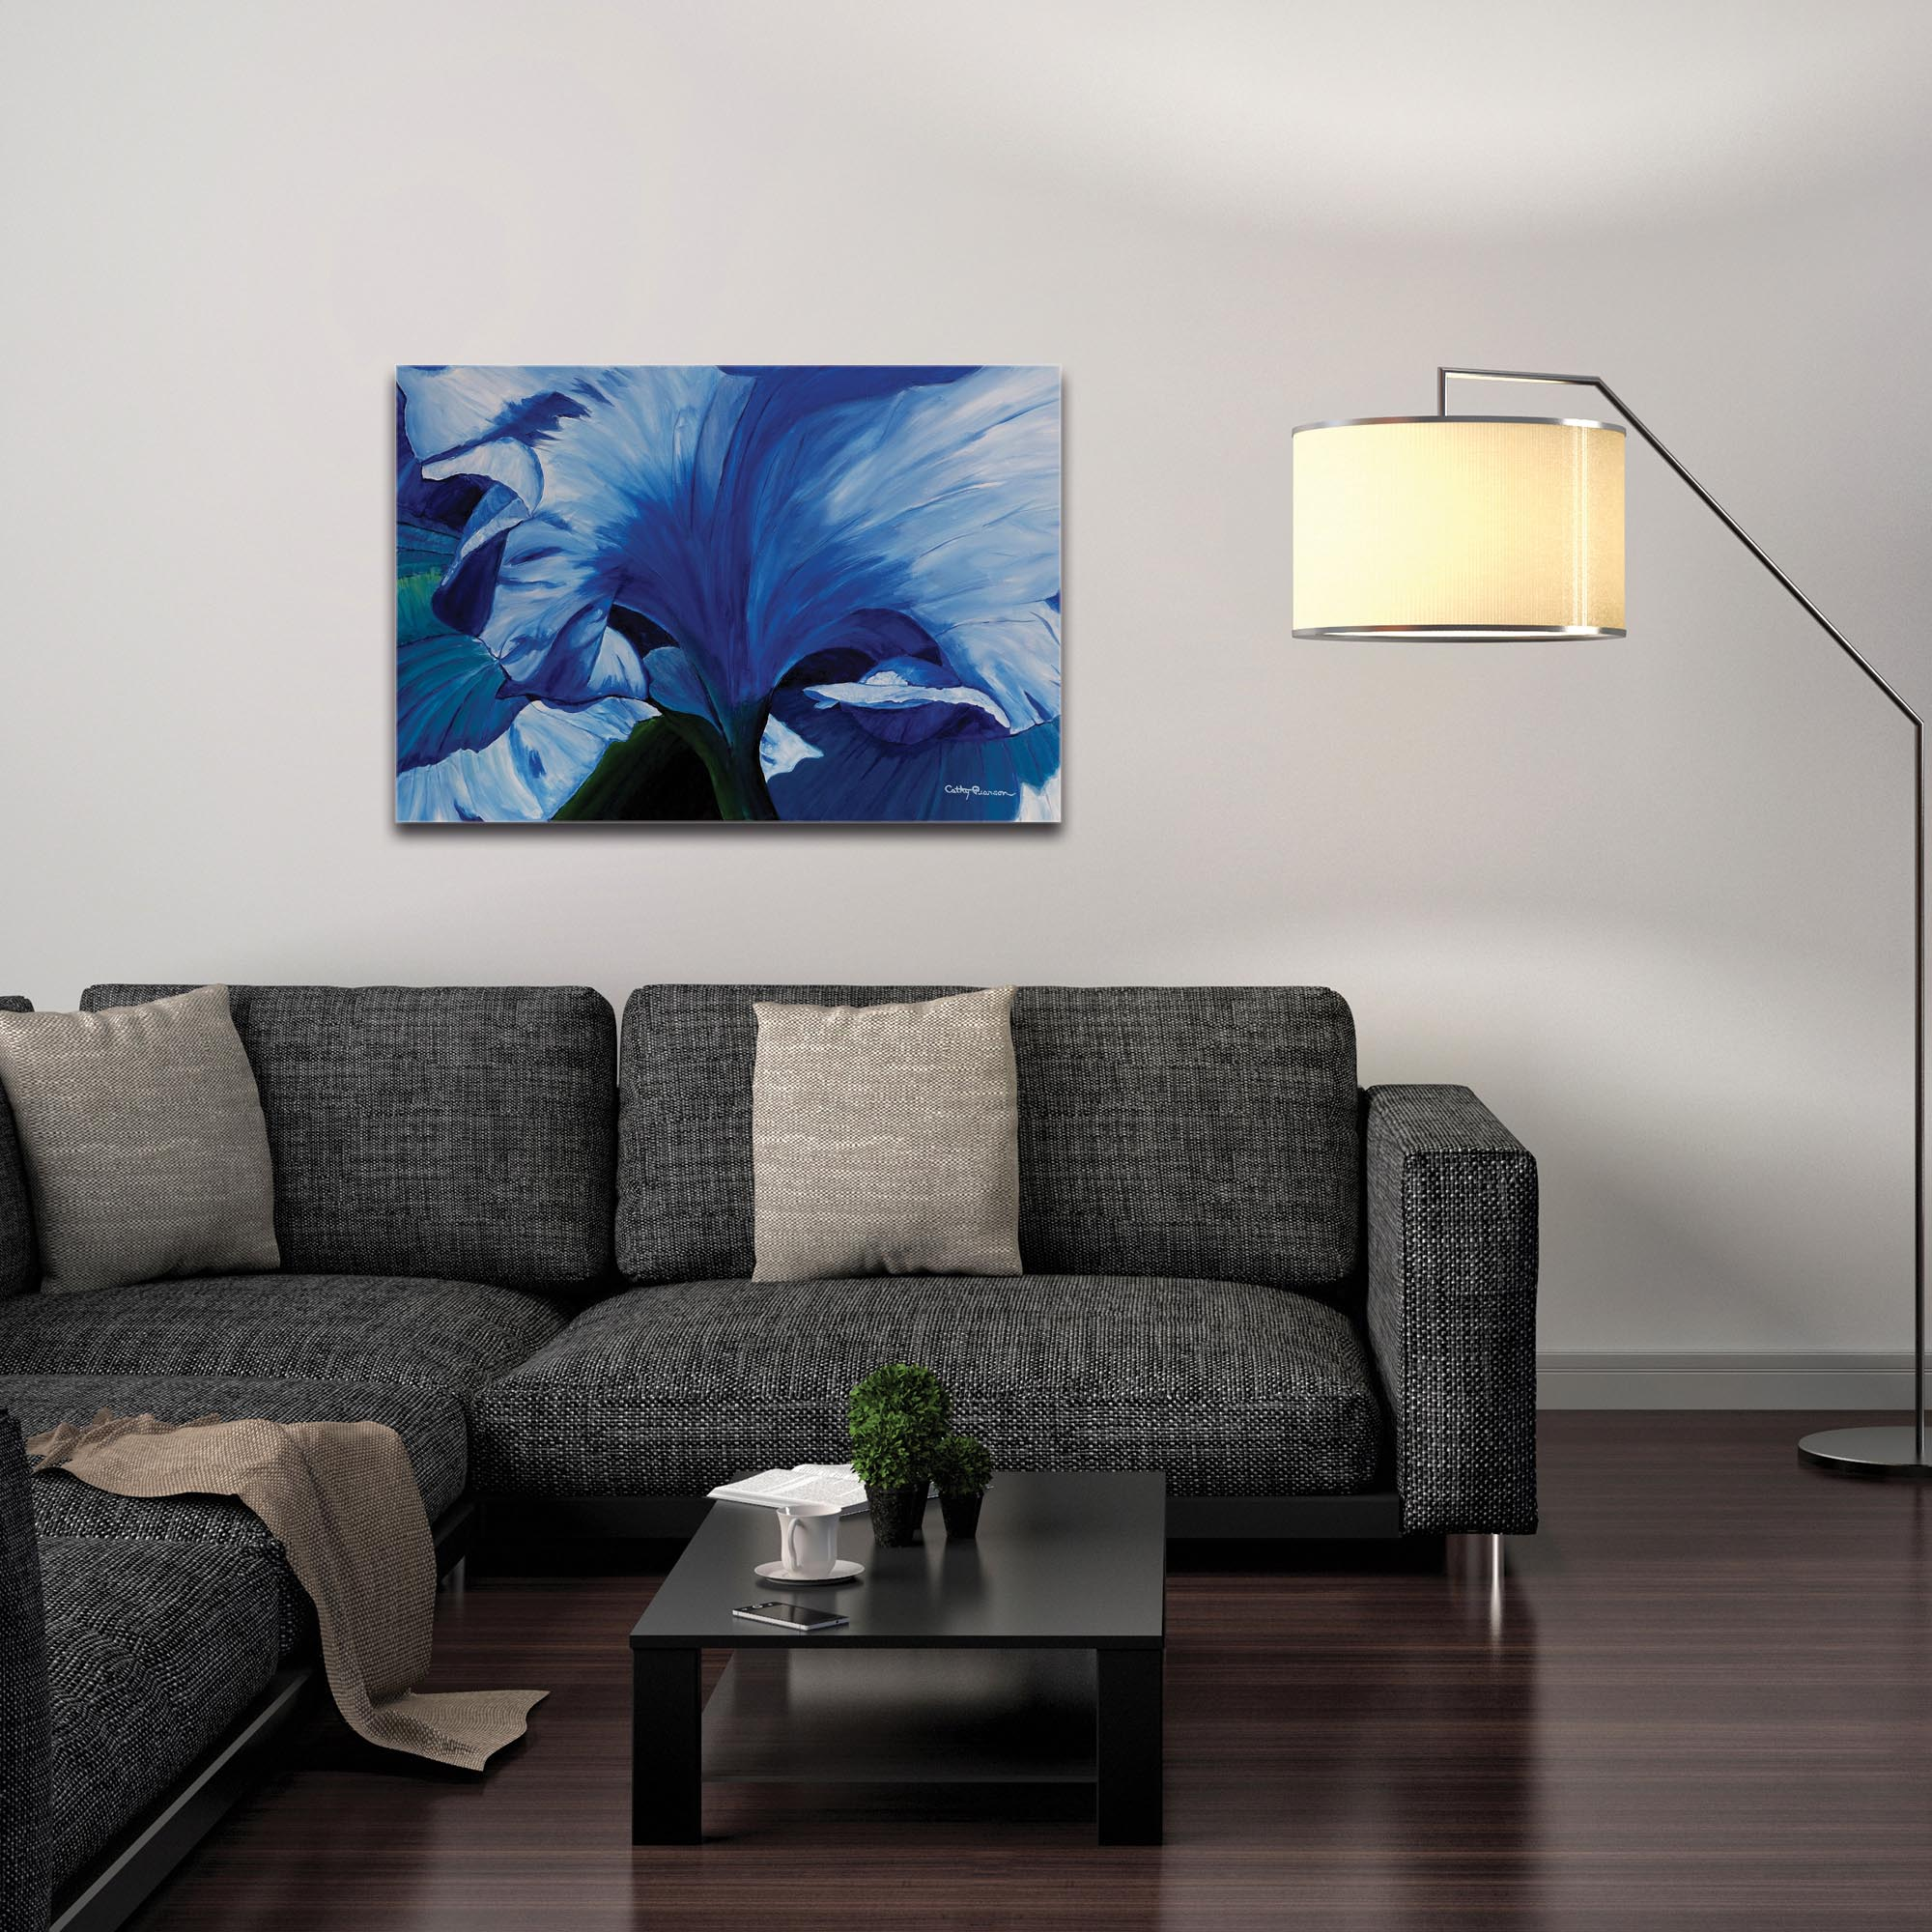 Traditional Wall Art 'Heart of a Blue Iris' - Floral Decor on Metal or Plexiglass - Image 3